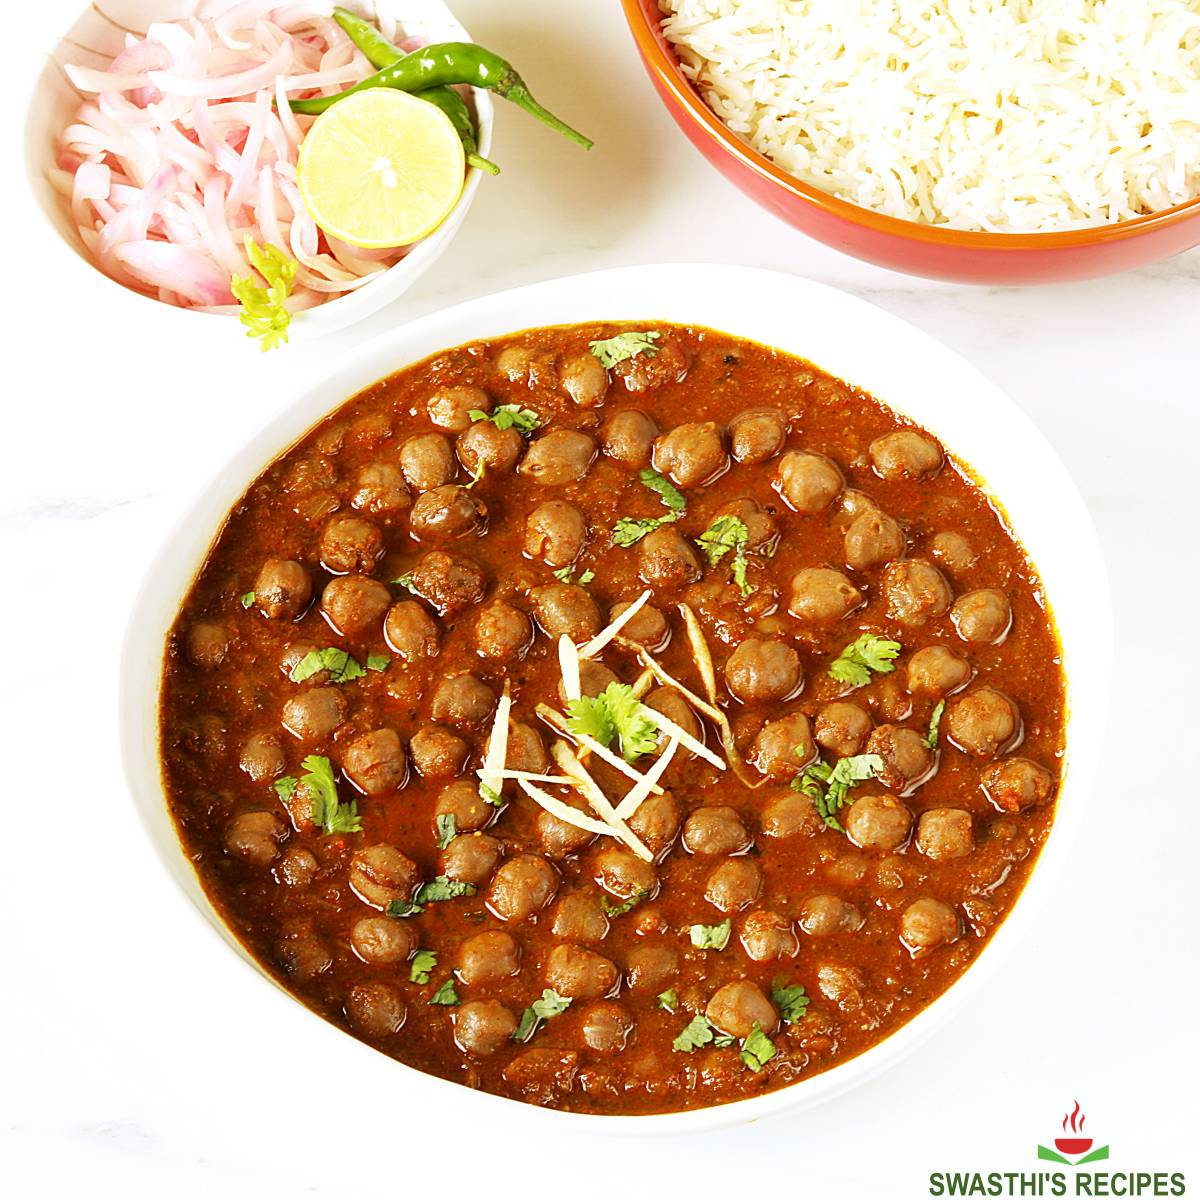 chole recipe made with chickpeas, spices and herbs